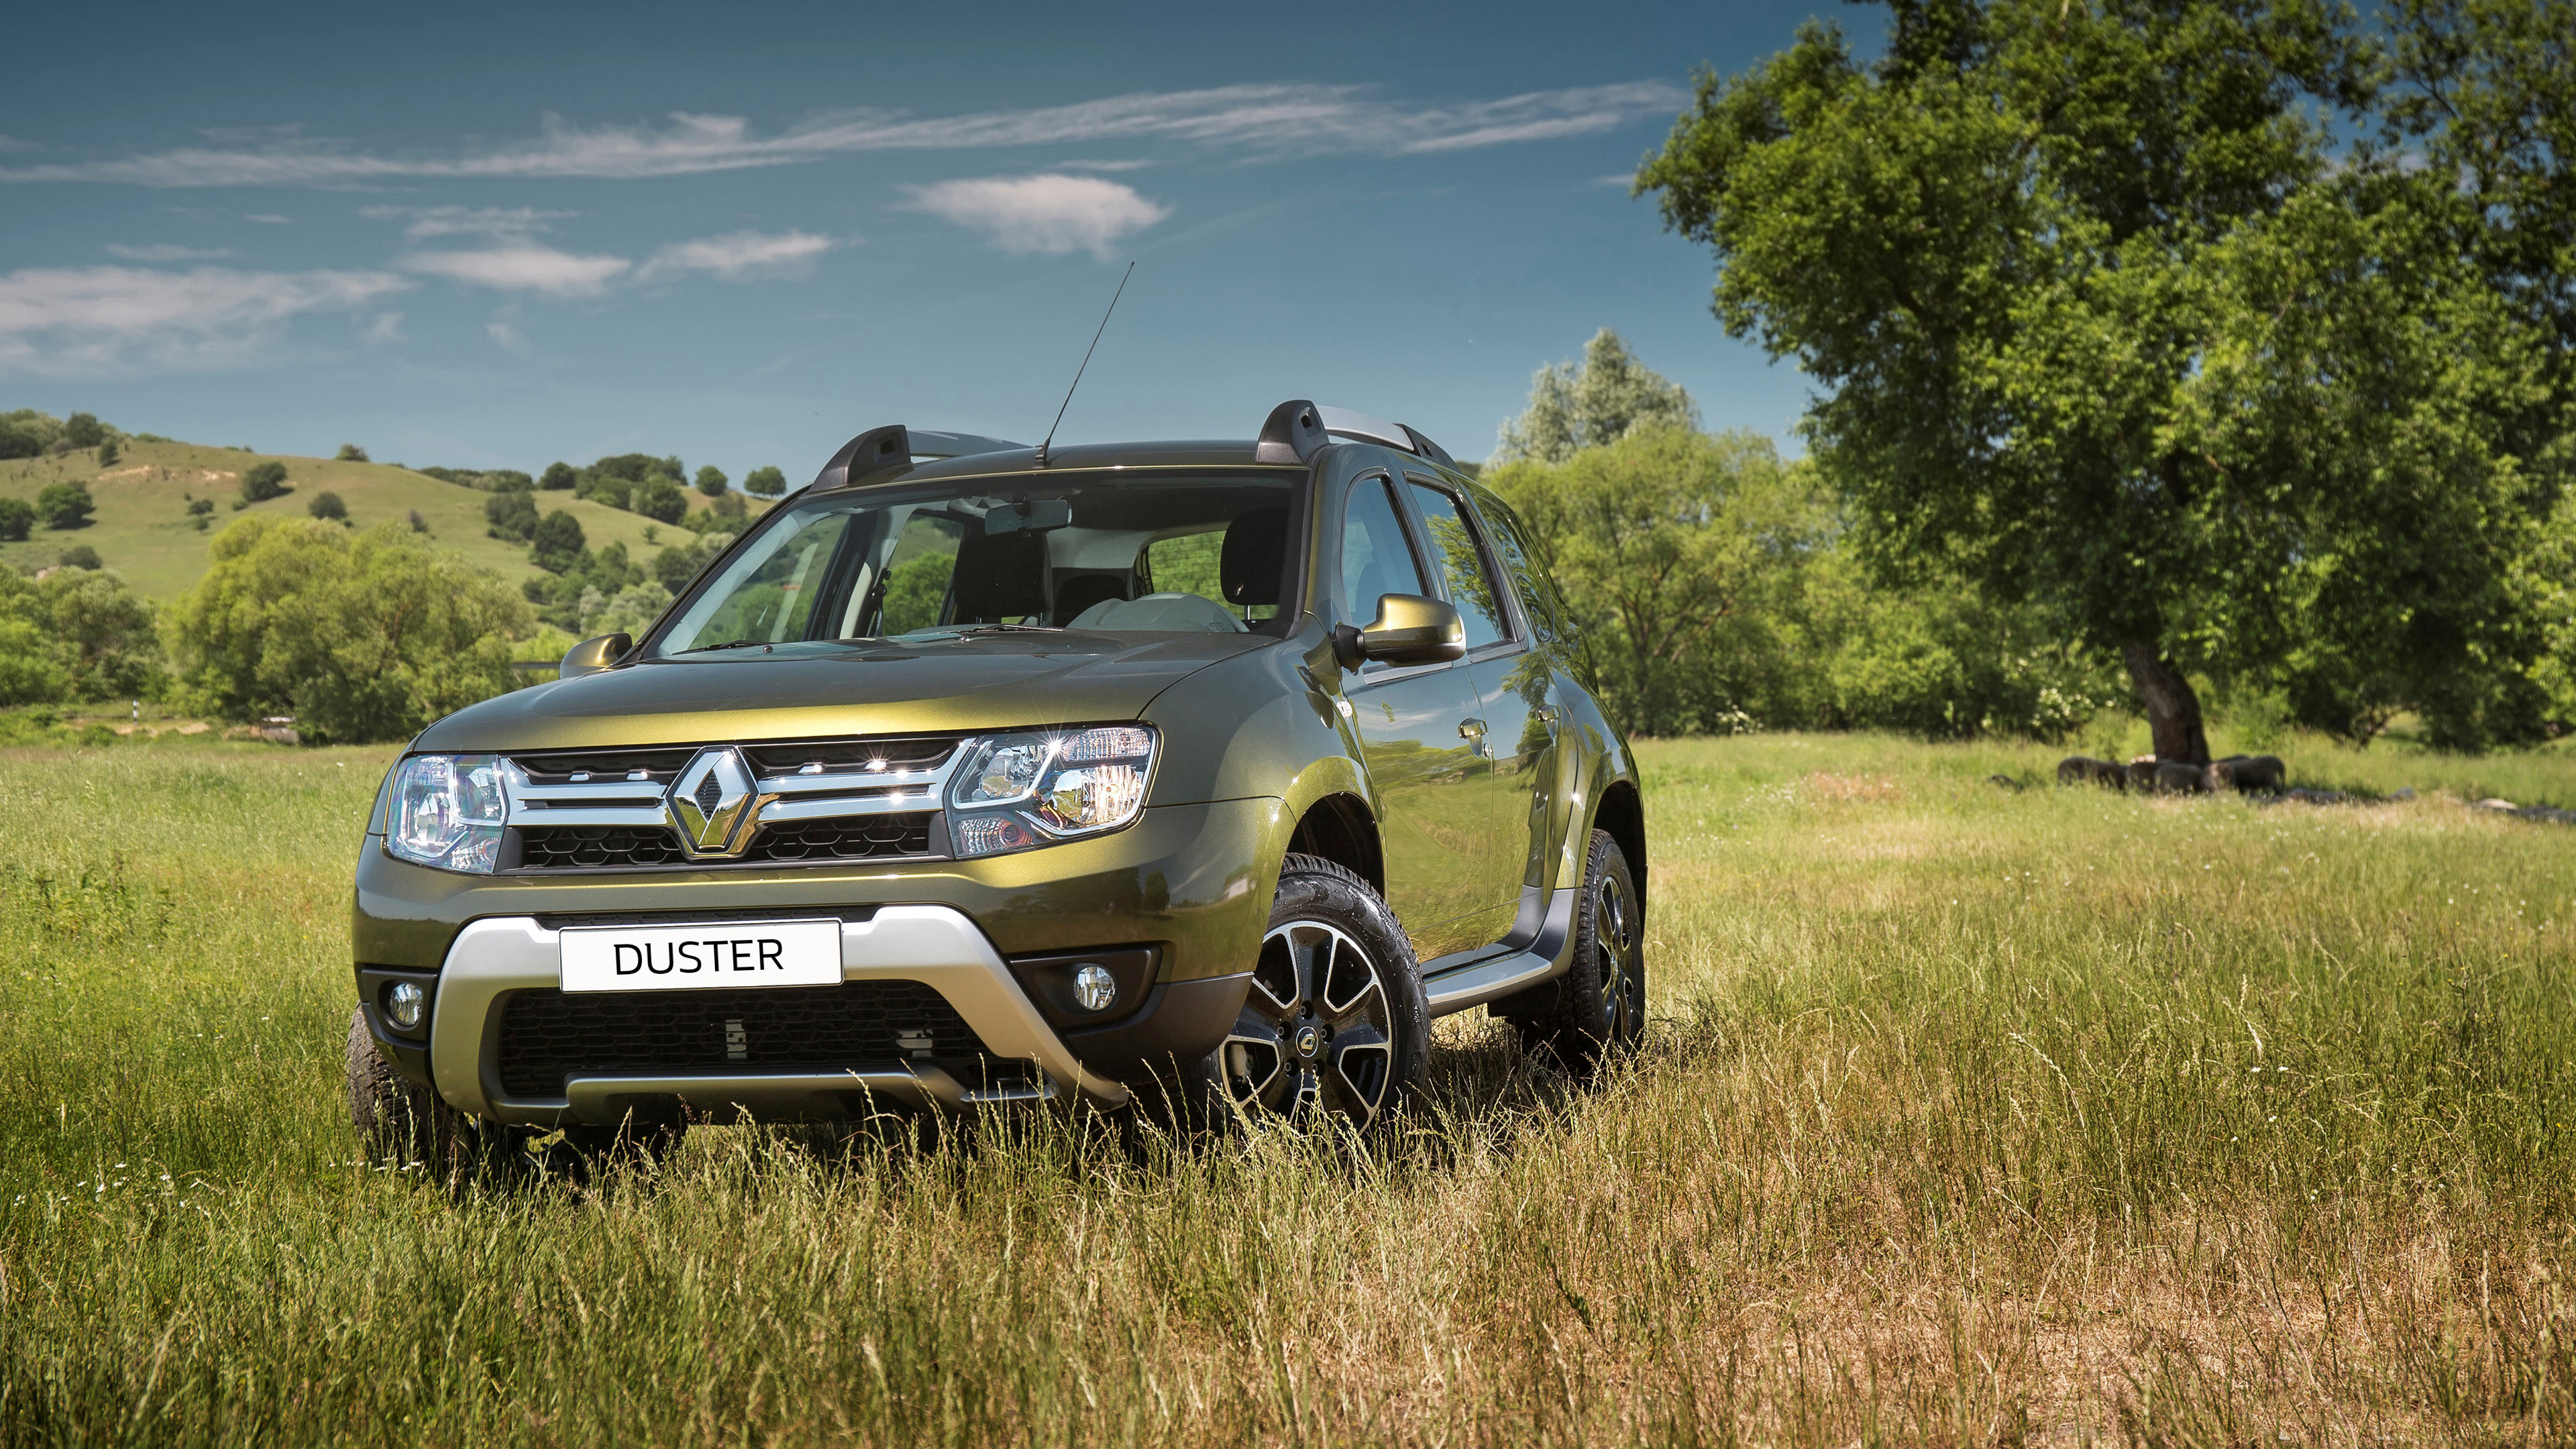 renault-duster-green-pack1-3840x2160-10